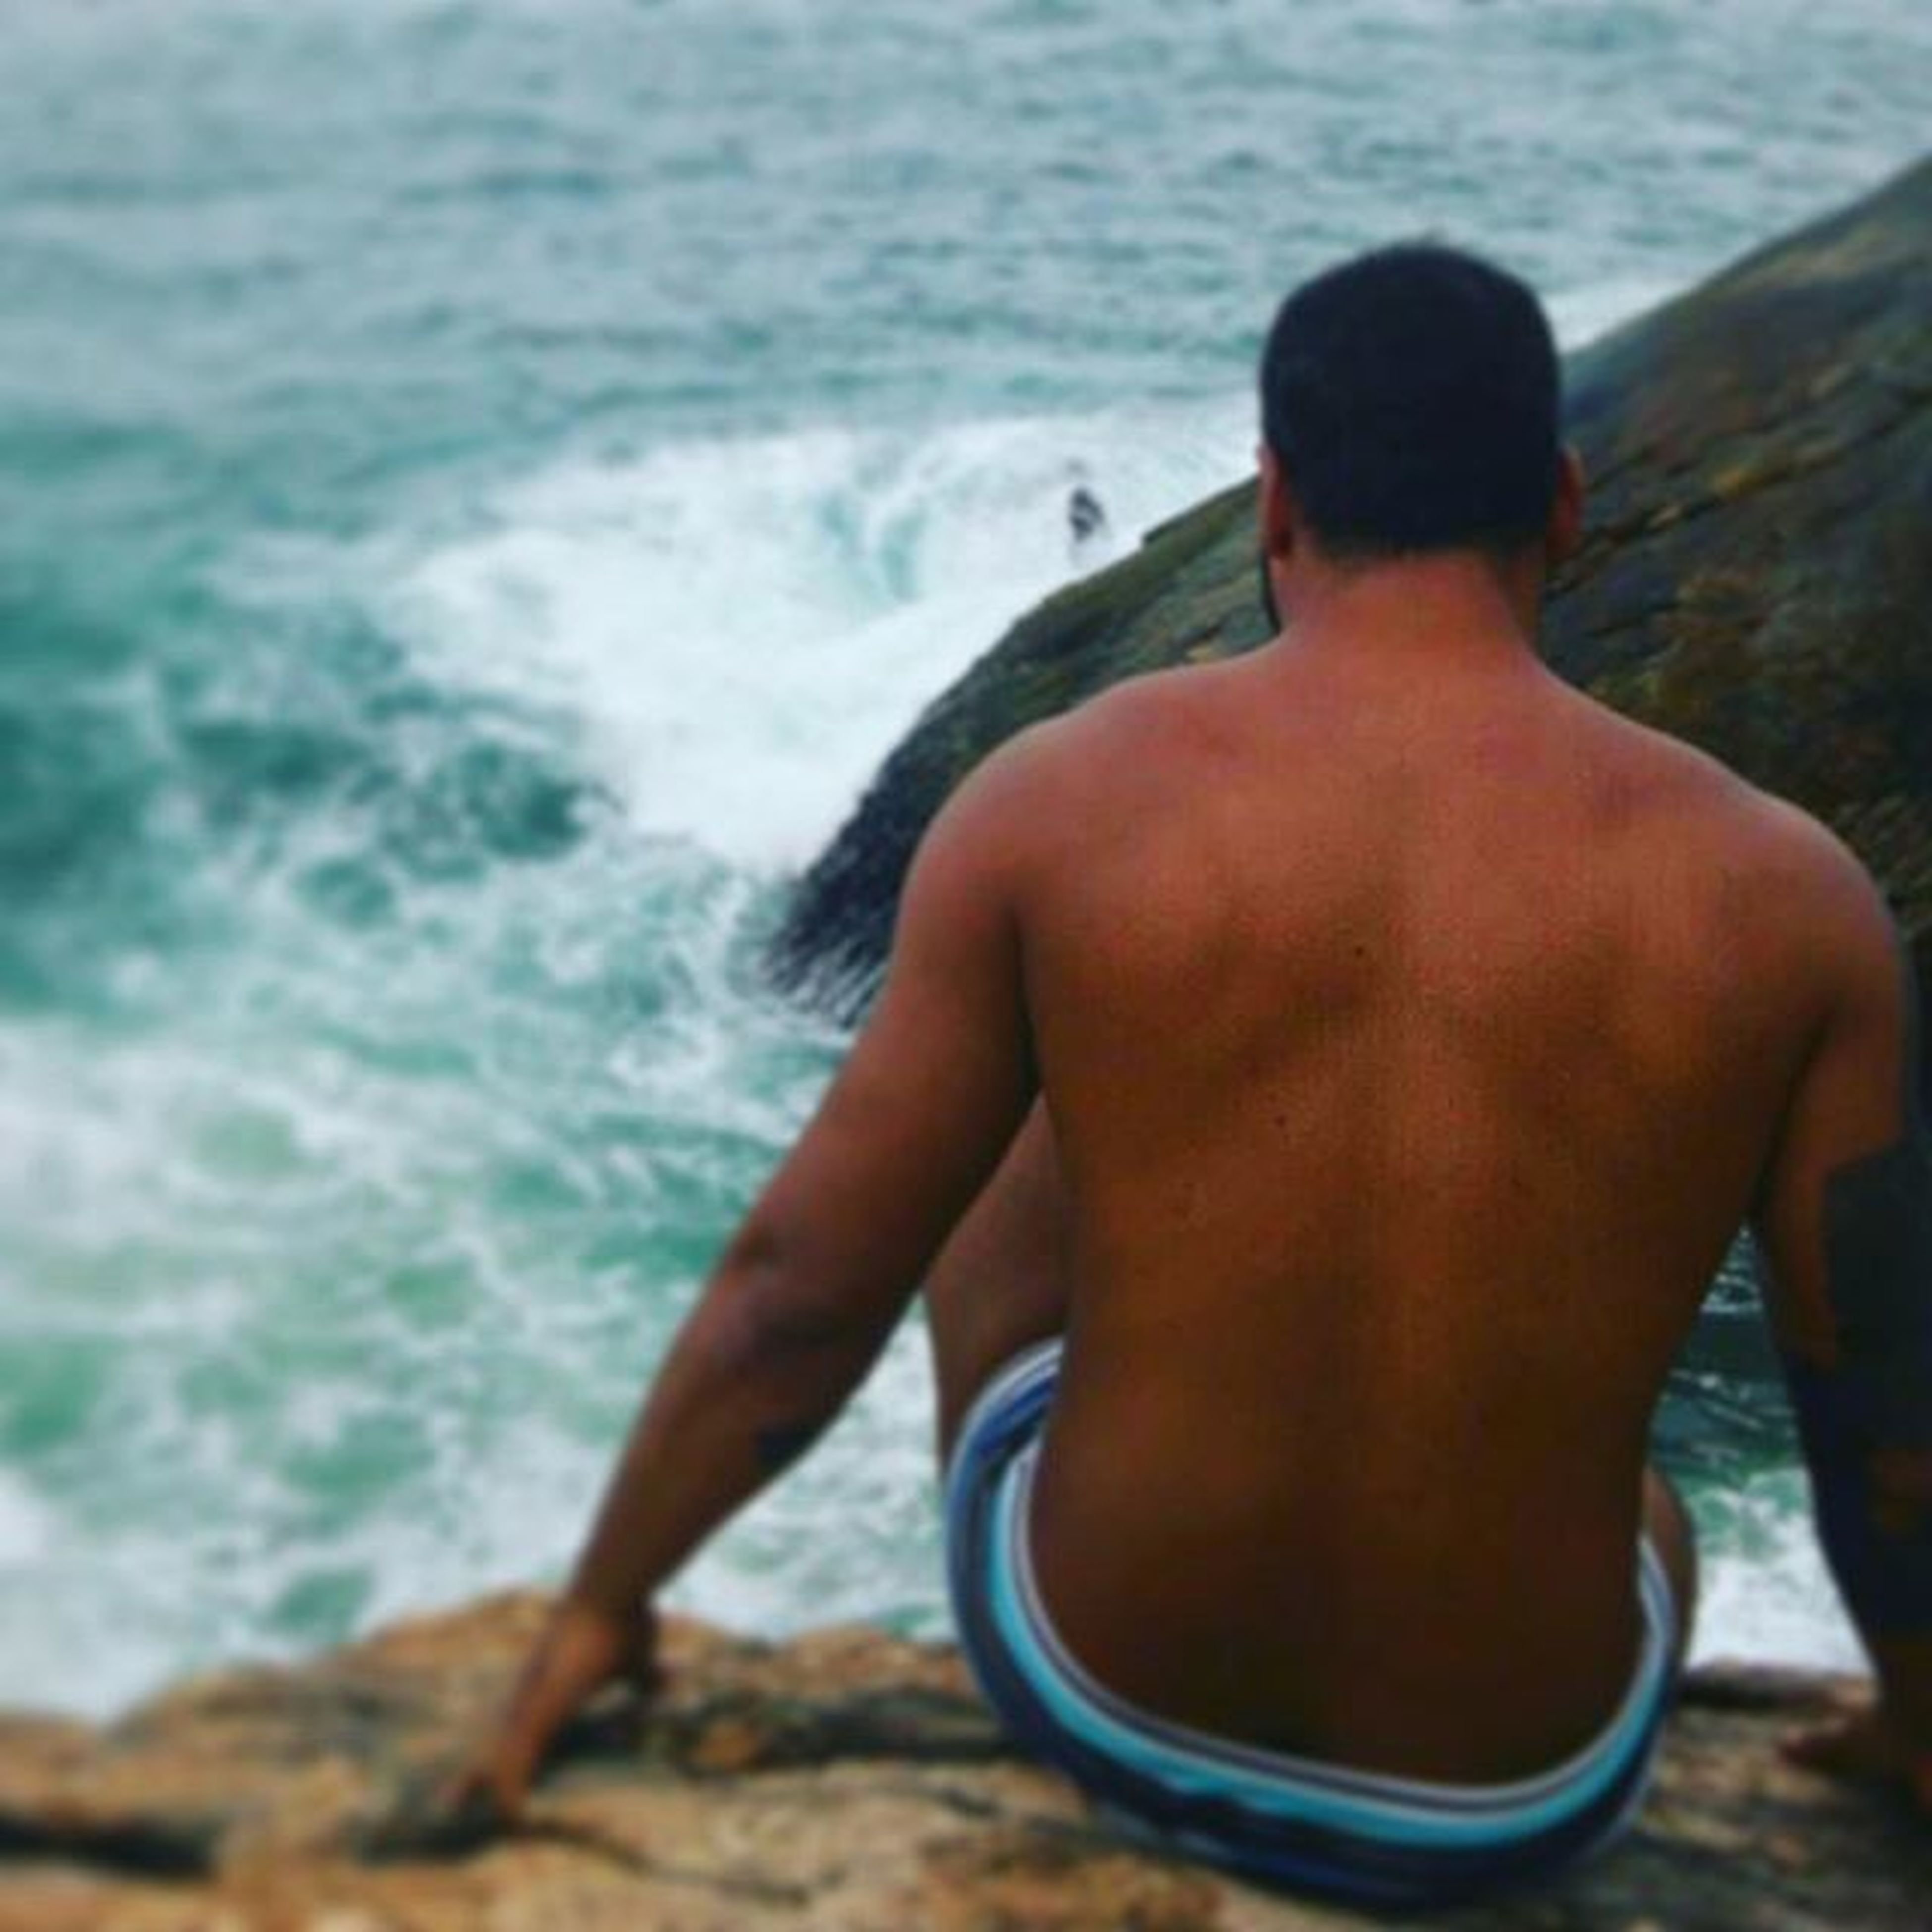 water, sea, leisure activity, lifestyles, beach, wave, vacations, rear view, men, shore, focus on foreground, nature, relaxation, surf, shirtless, day, person, outdoors